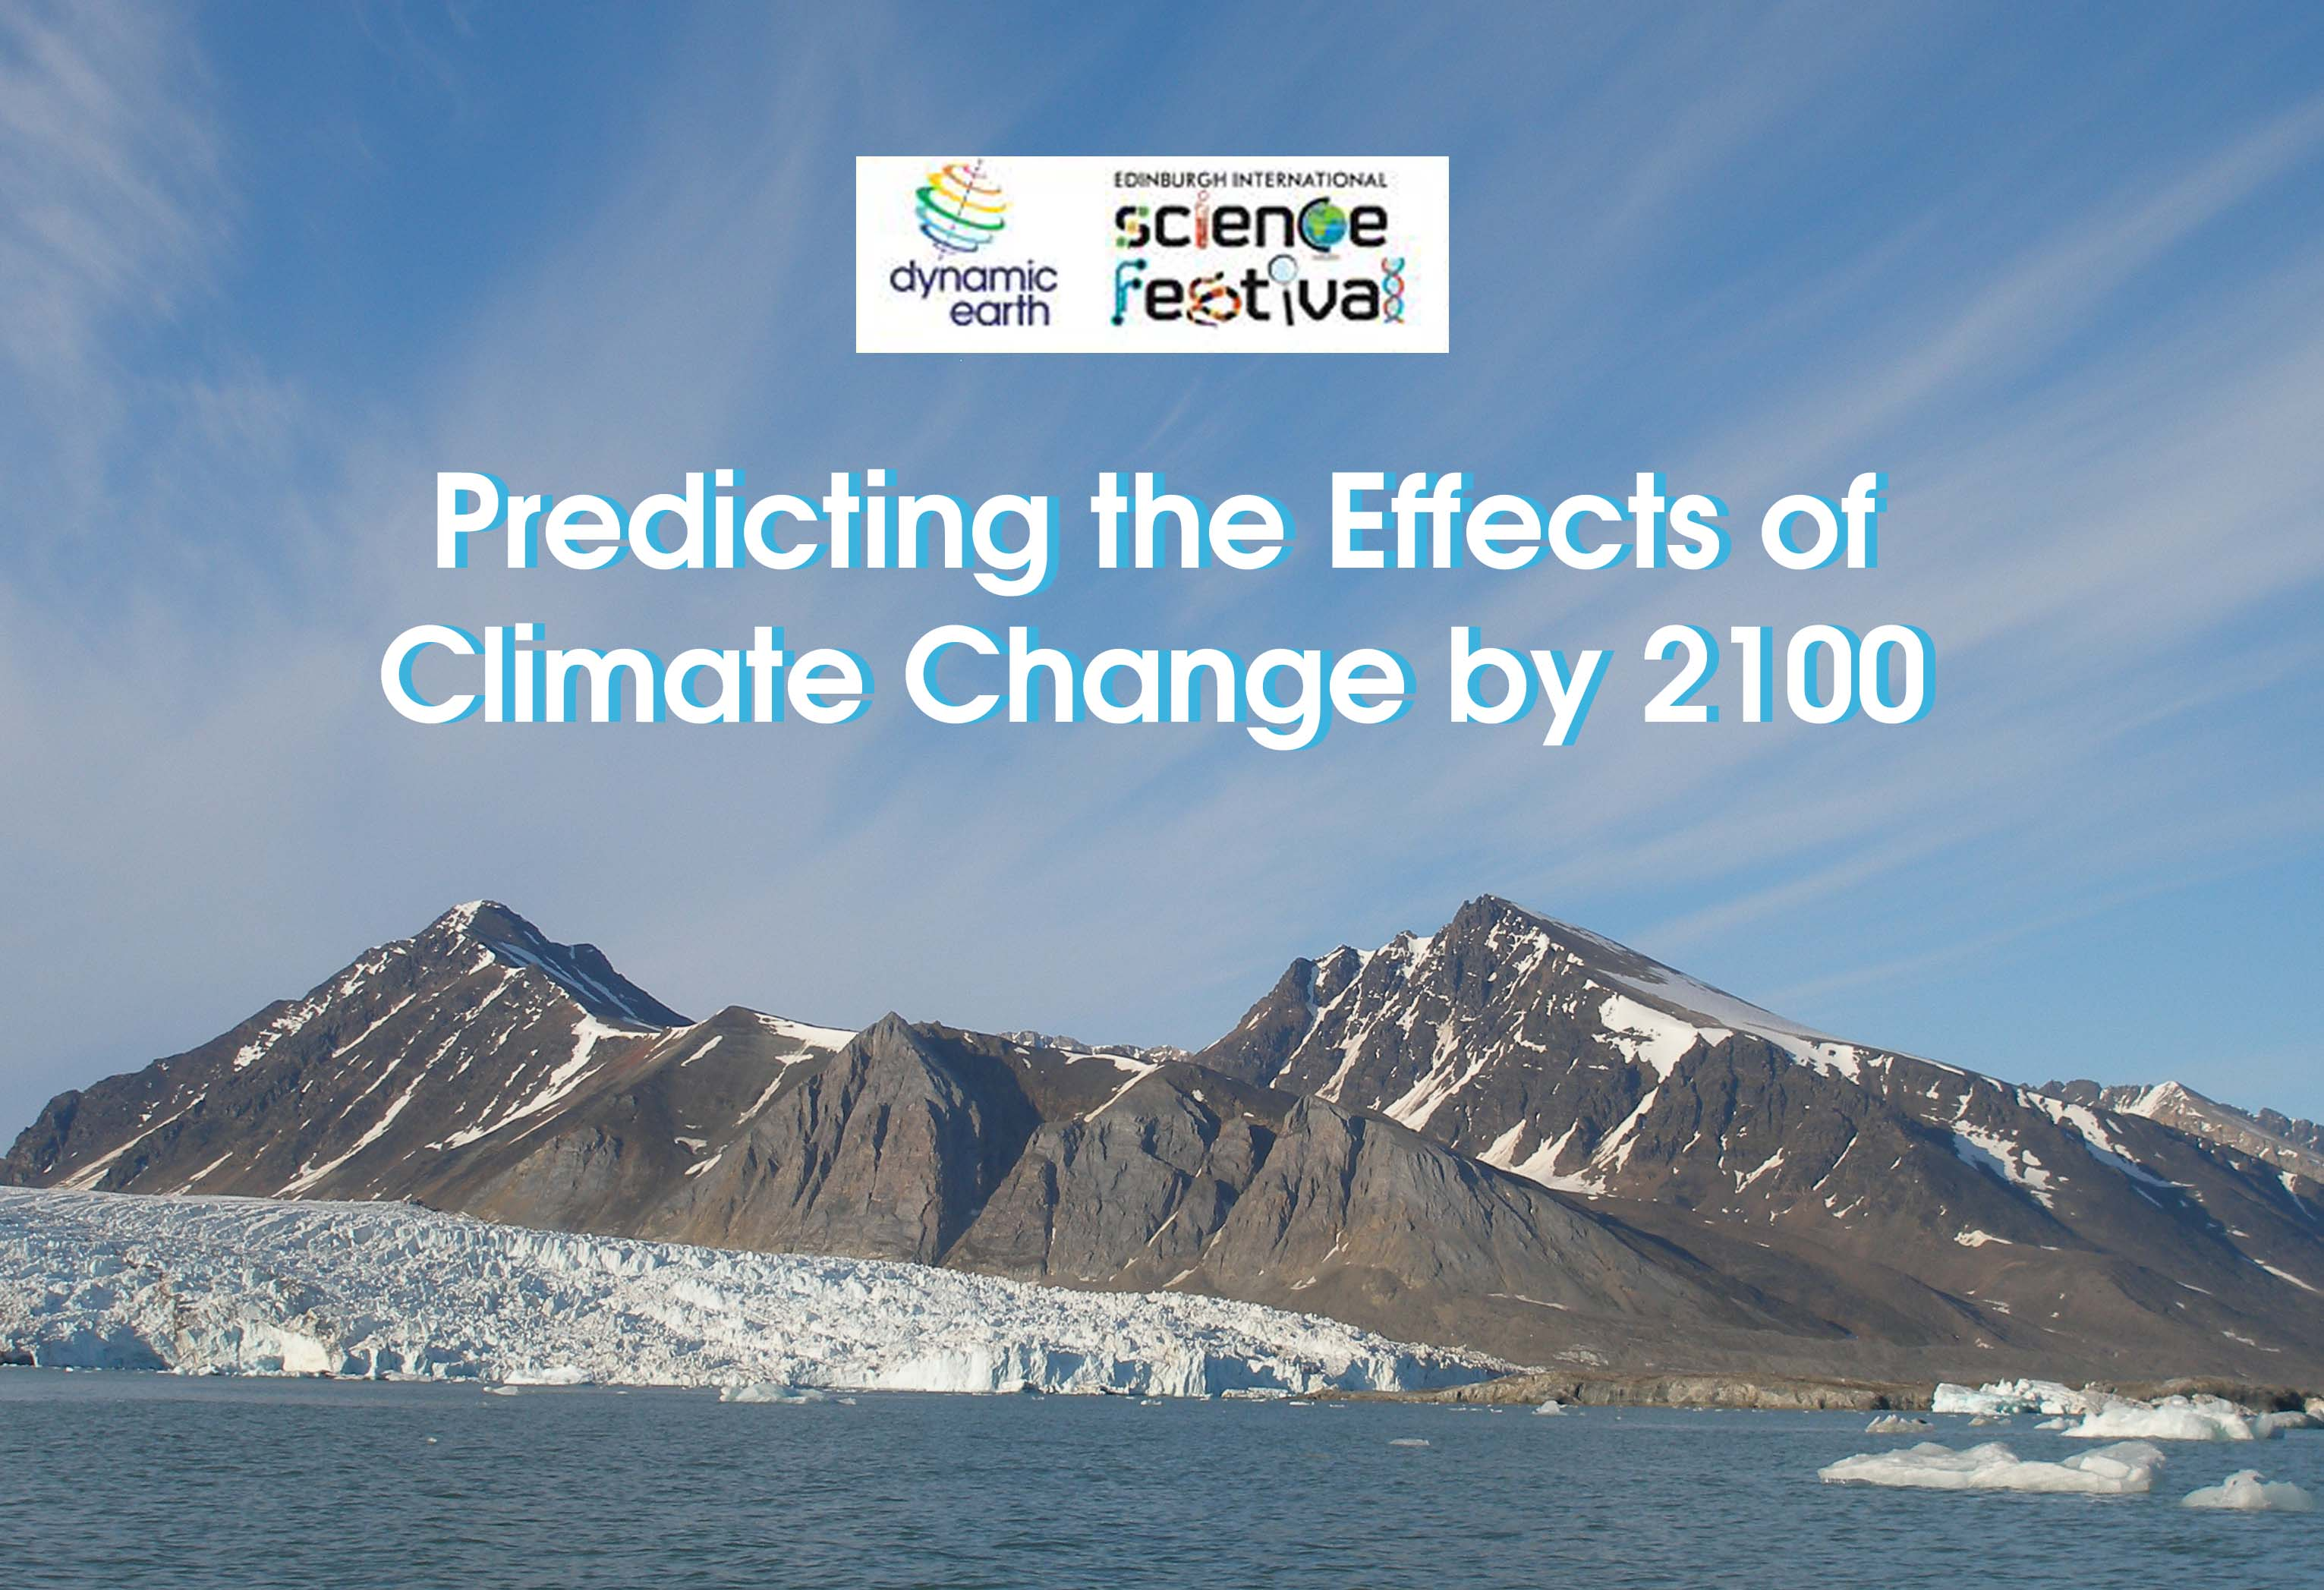 Predicting the Effects of Climate Change by 2100